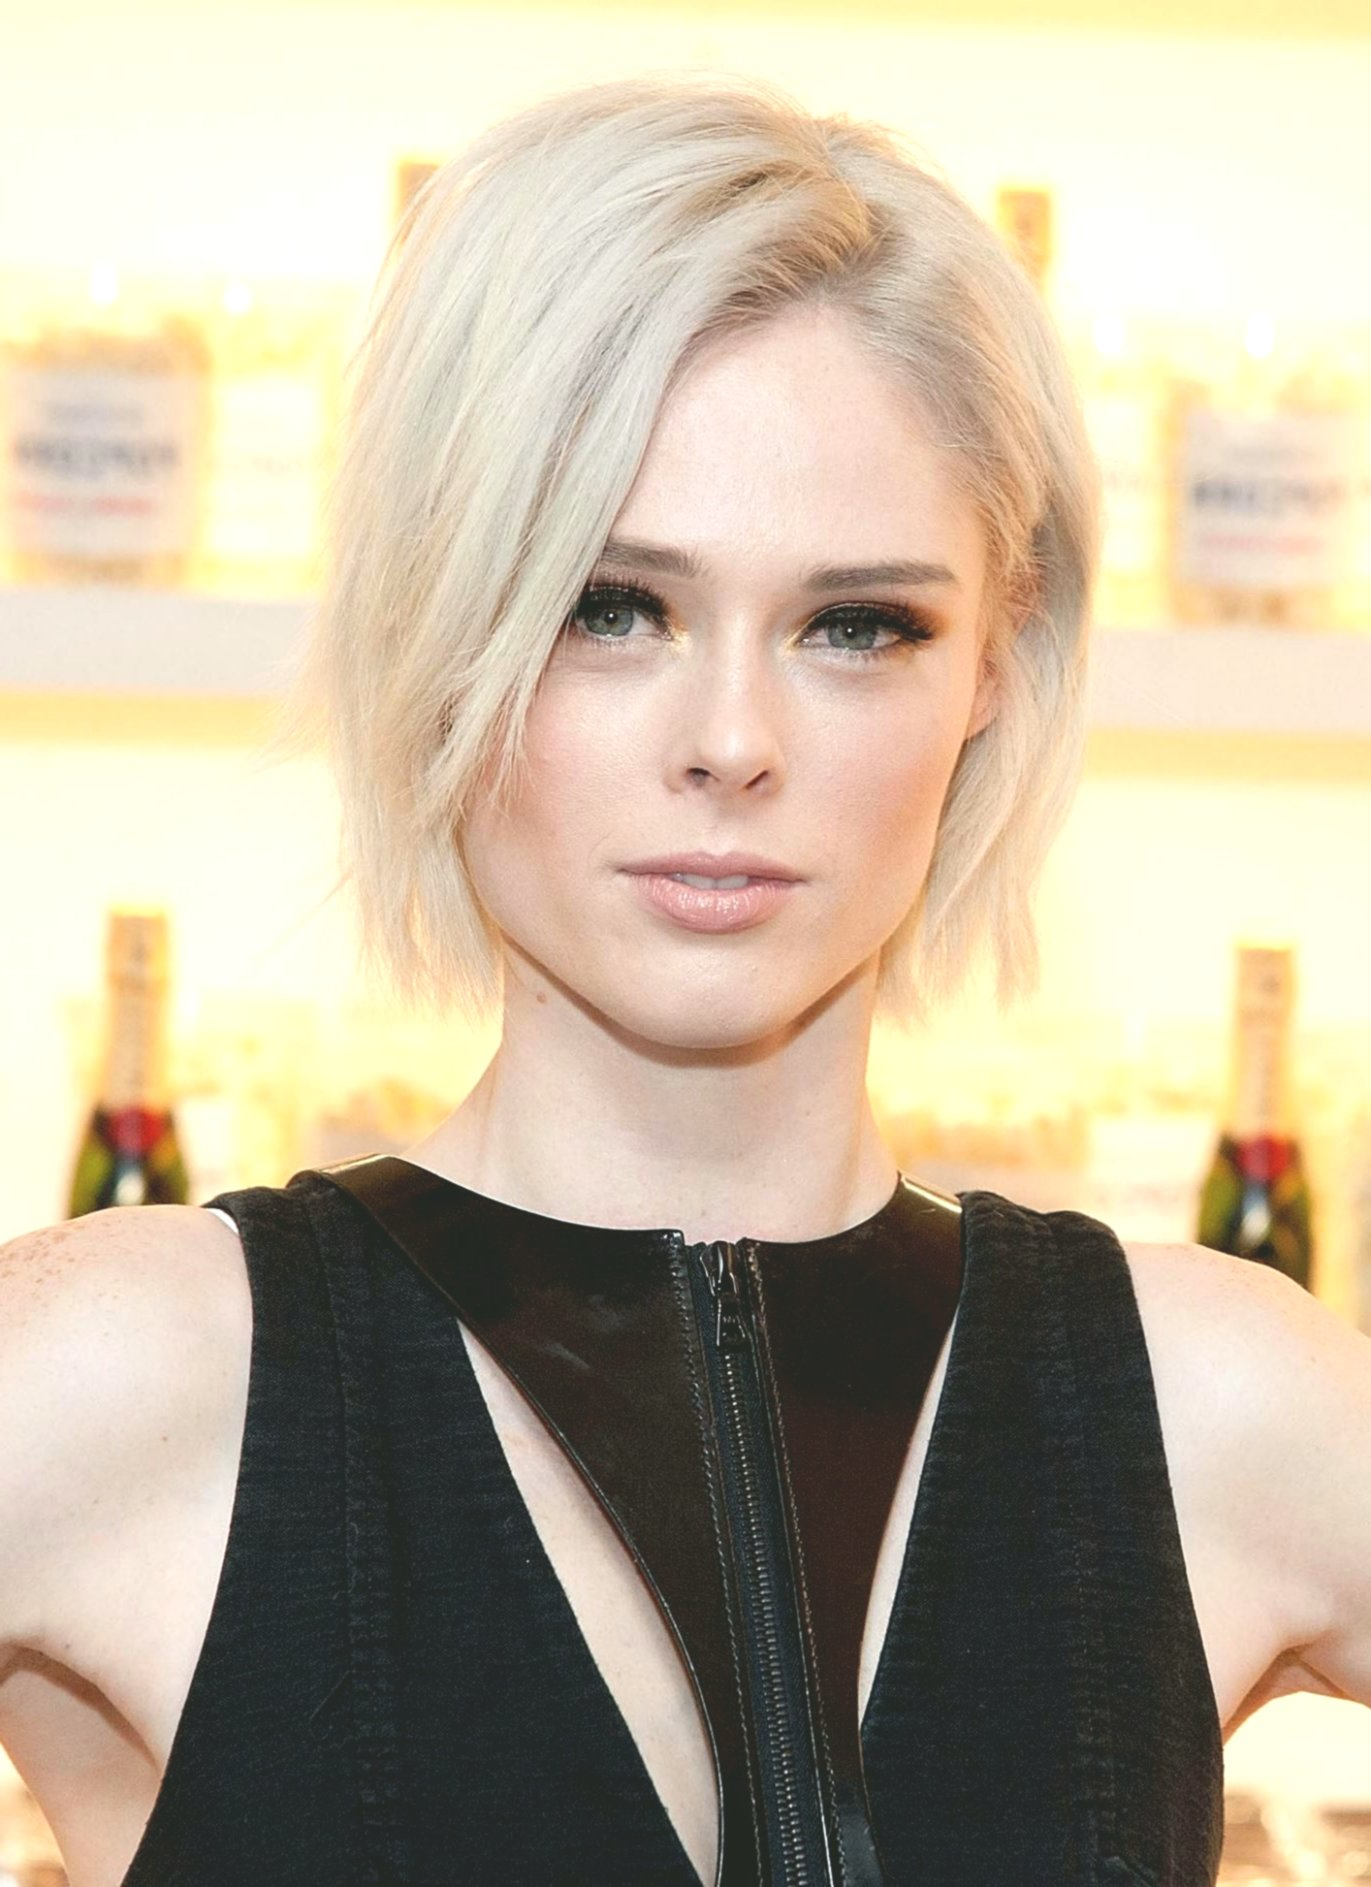 lovely festive short hairstyles collection-Stylish Festive Short Hairstyles Gallery